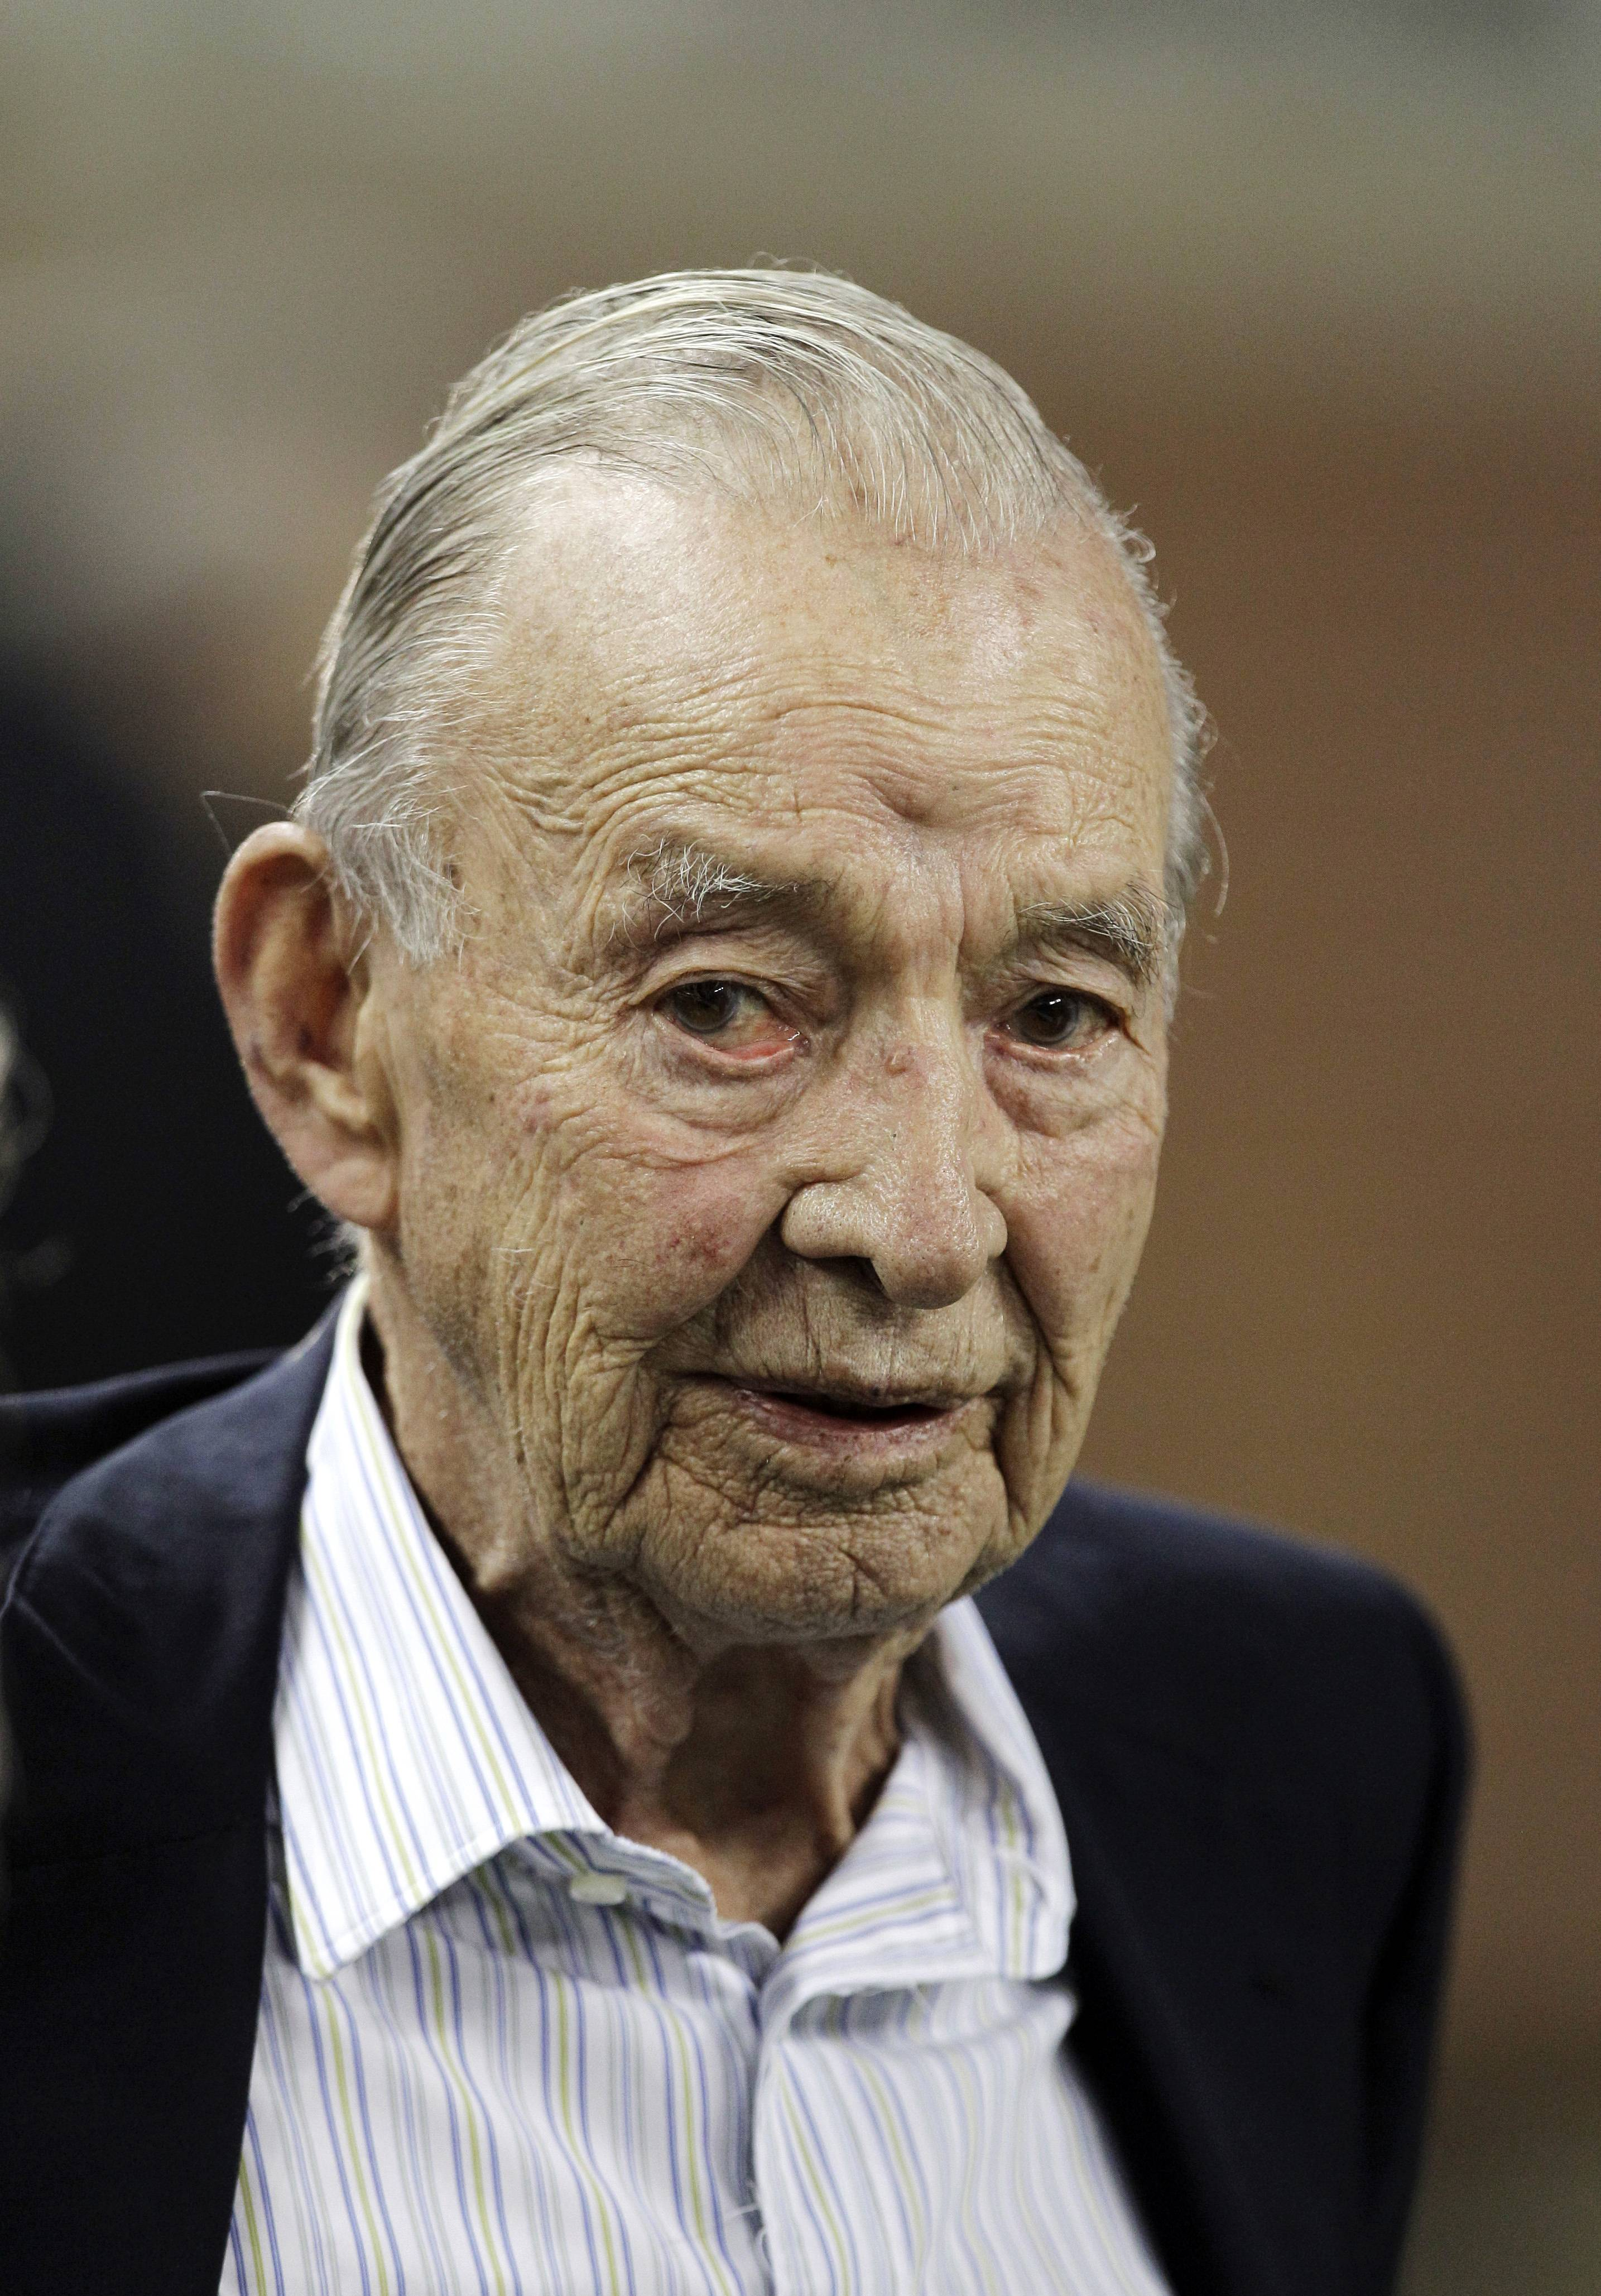 Detroit Lions owner and chairman William Clay Ford Sr. passed away in his home at the age of 88.